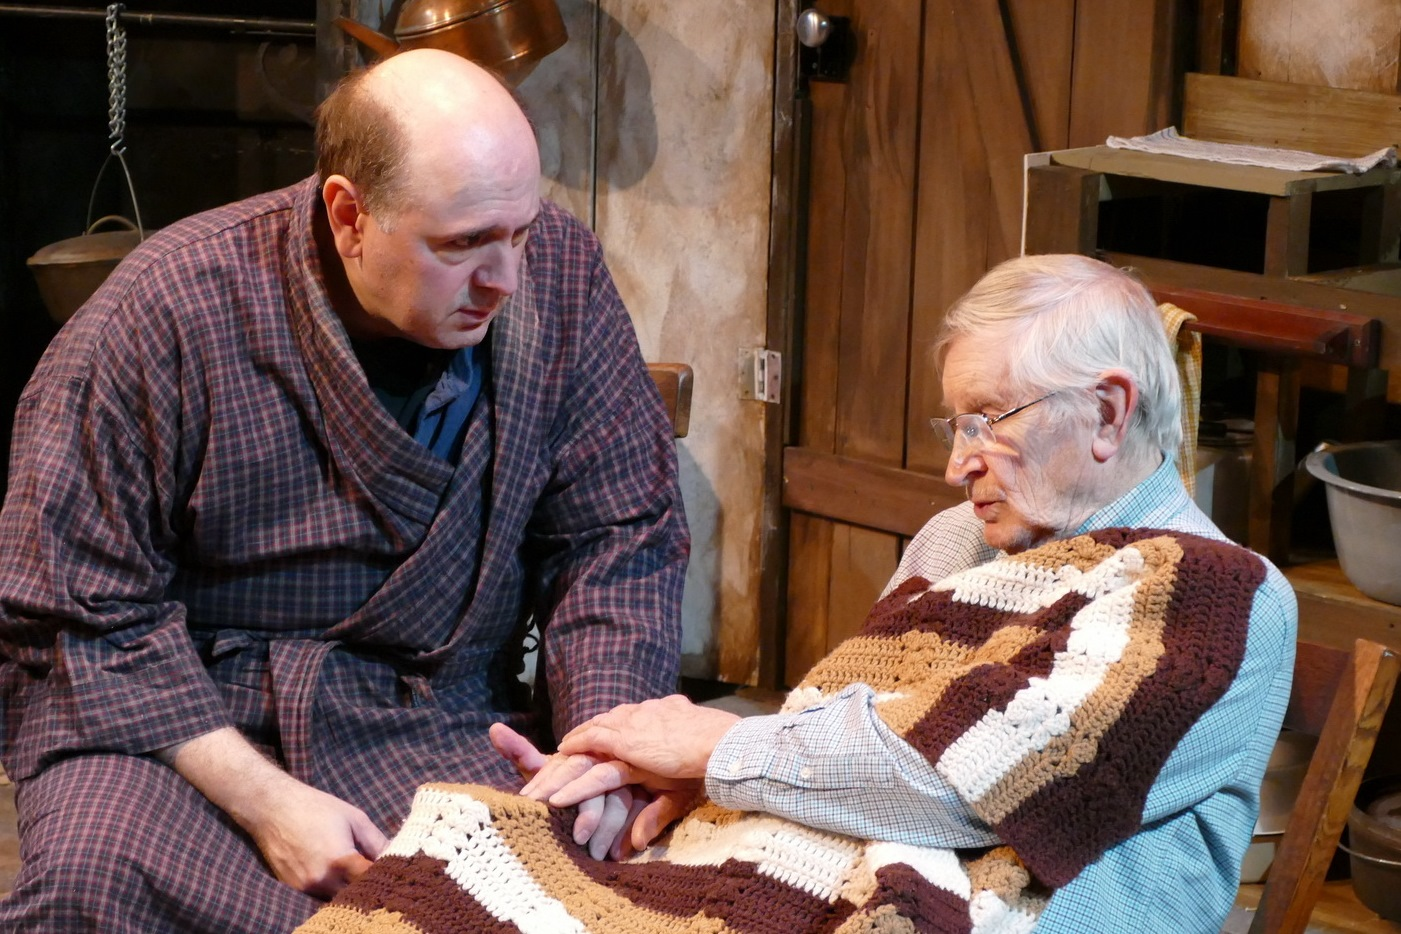 Chris D'Amico as Anthony Reilly and Ron Newell as Tony Reilly